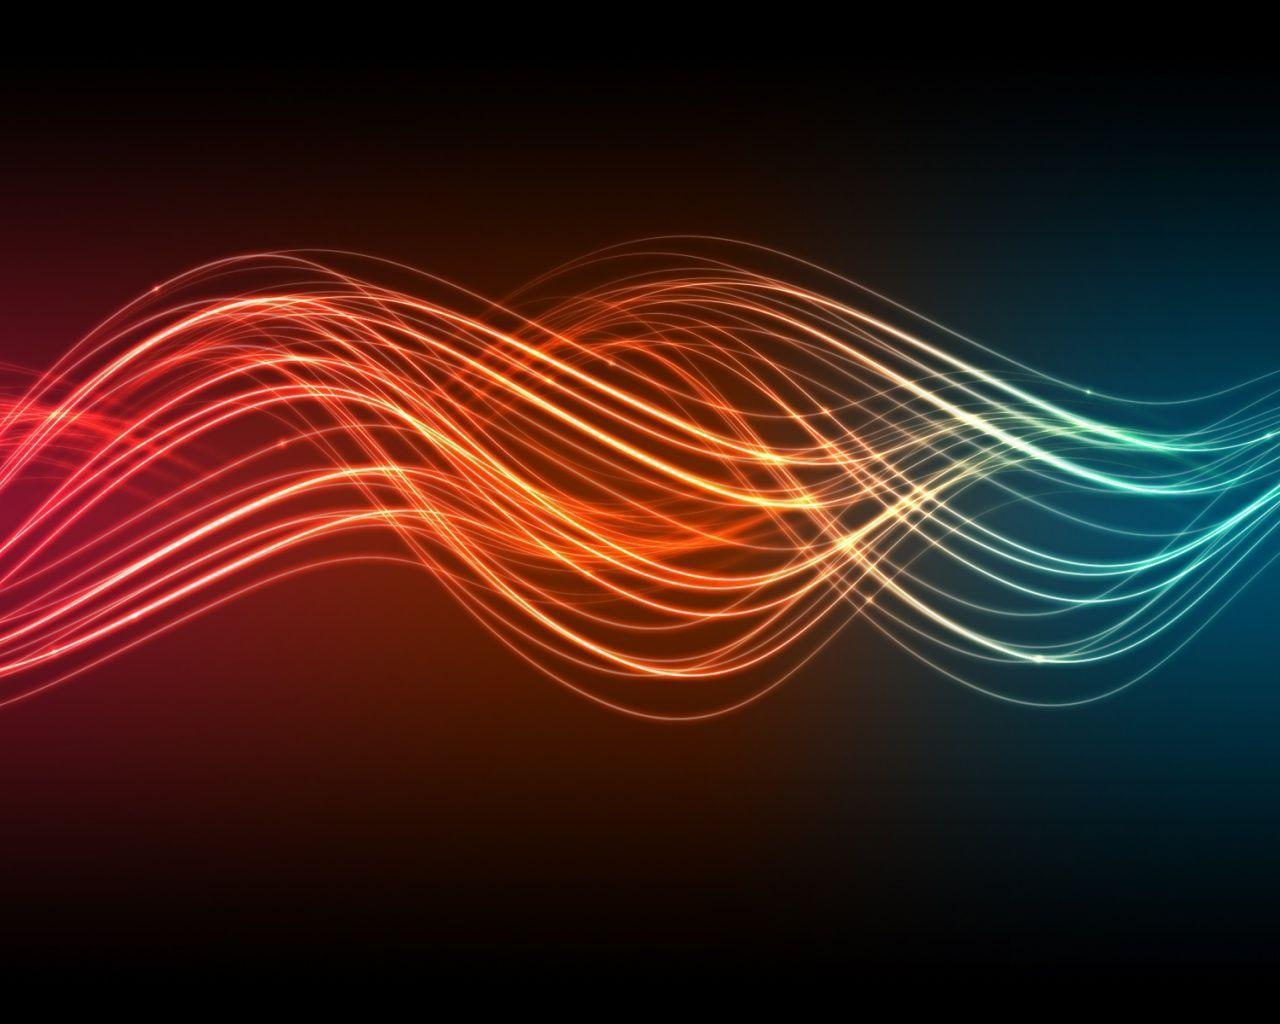 Sound Wave Wallpapers 1280x1024